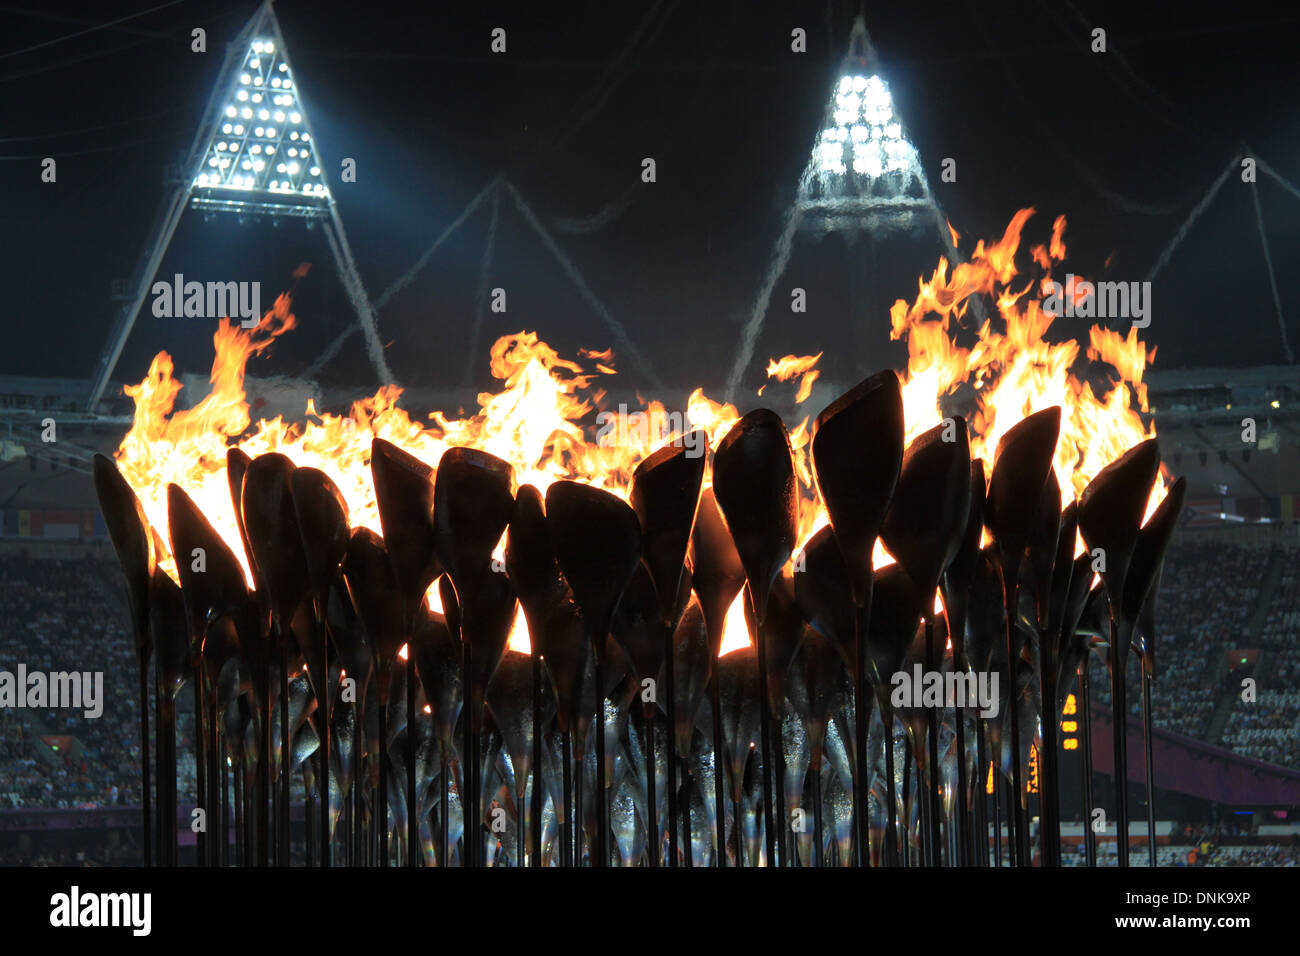 Olympic Flame 2012 - Stock Image